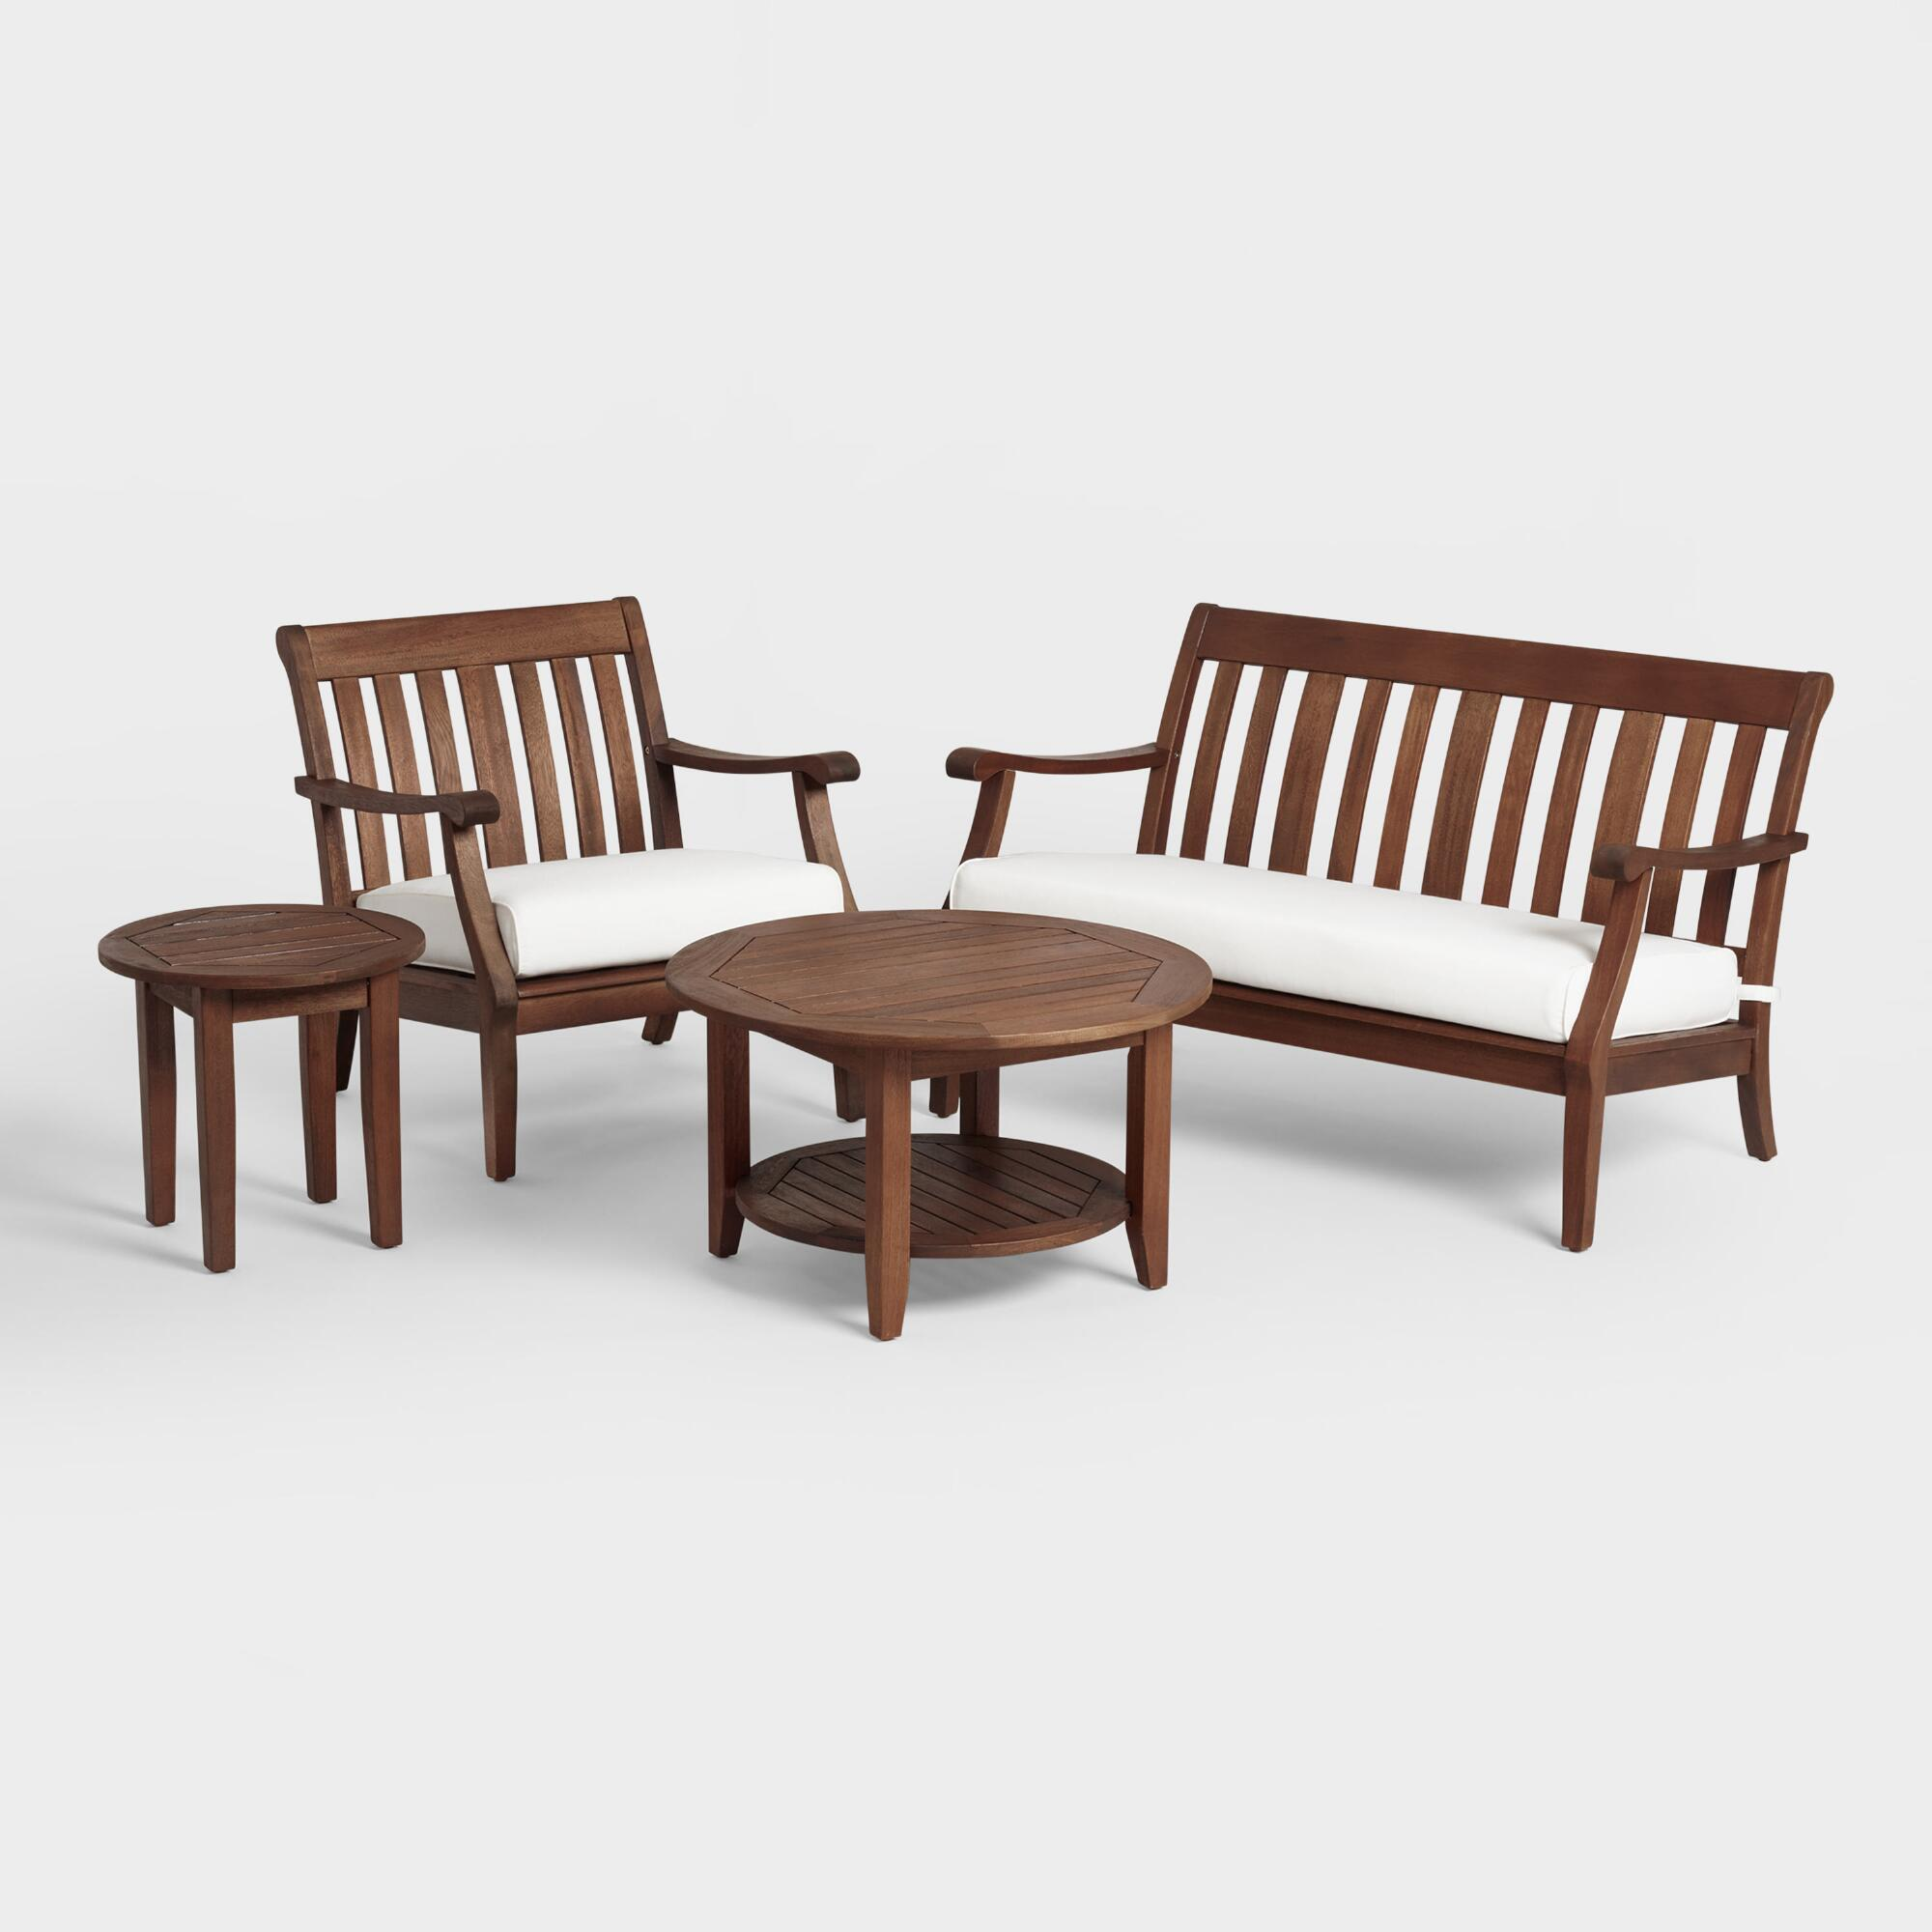 St martin outdoor occasional collection world market Uk home furniture market